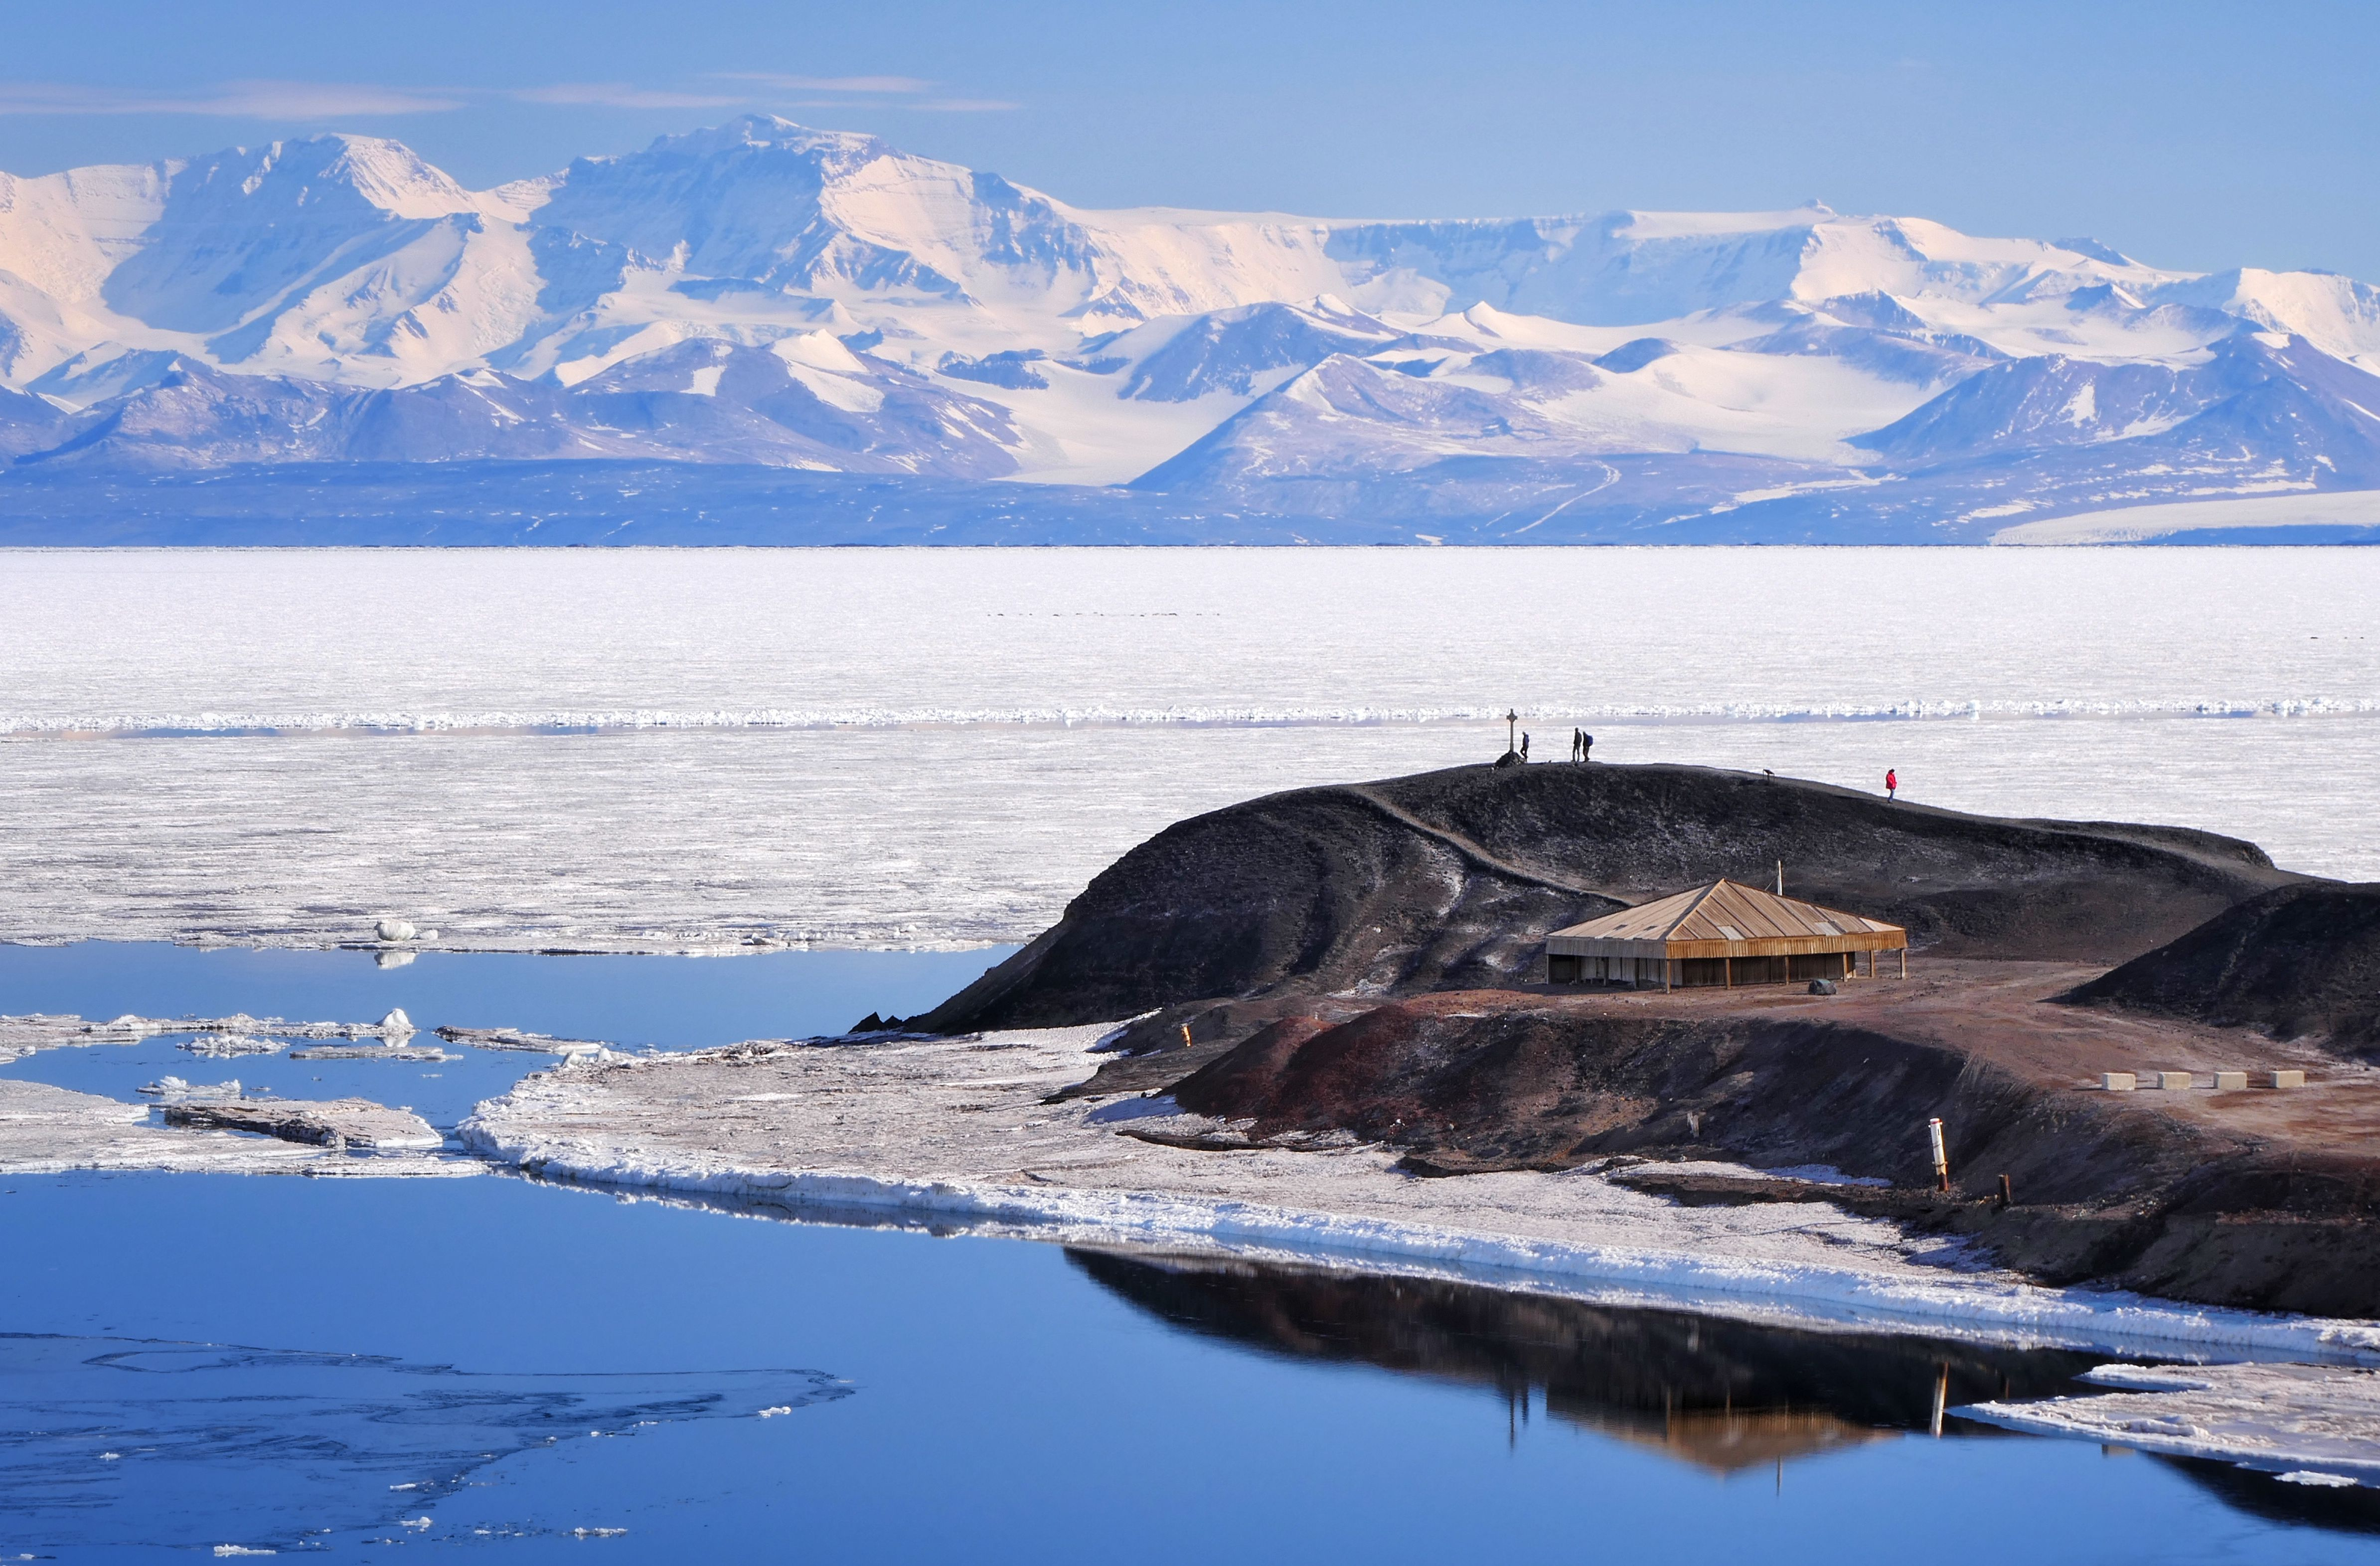 View over Scotts Discovery Hut and across McMurdo Sound to the Royal Society Range, McMurdo Station, Antarctica.